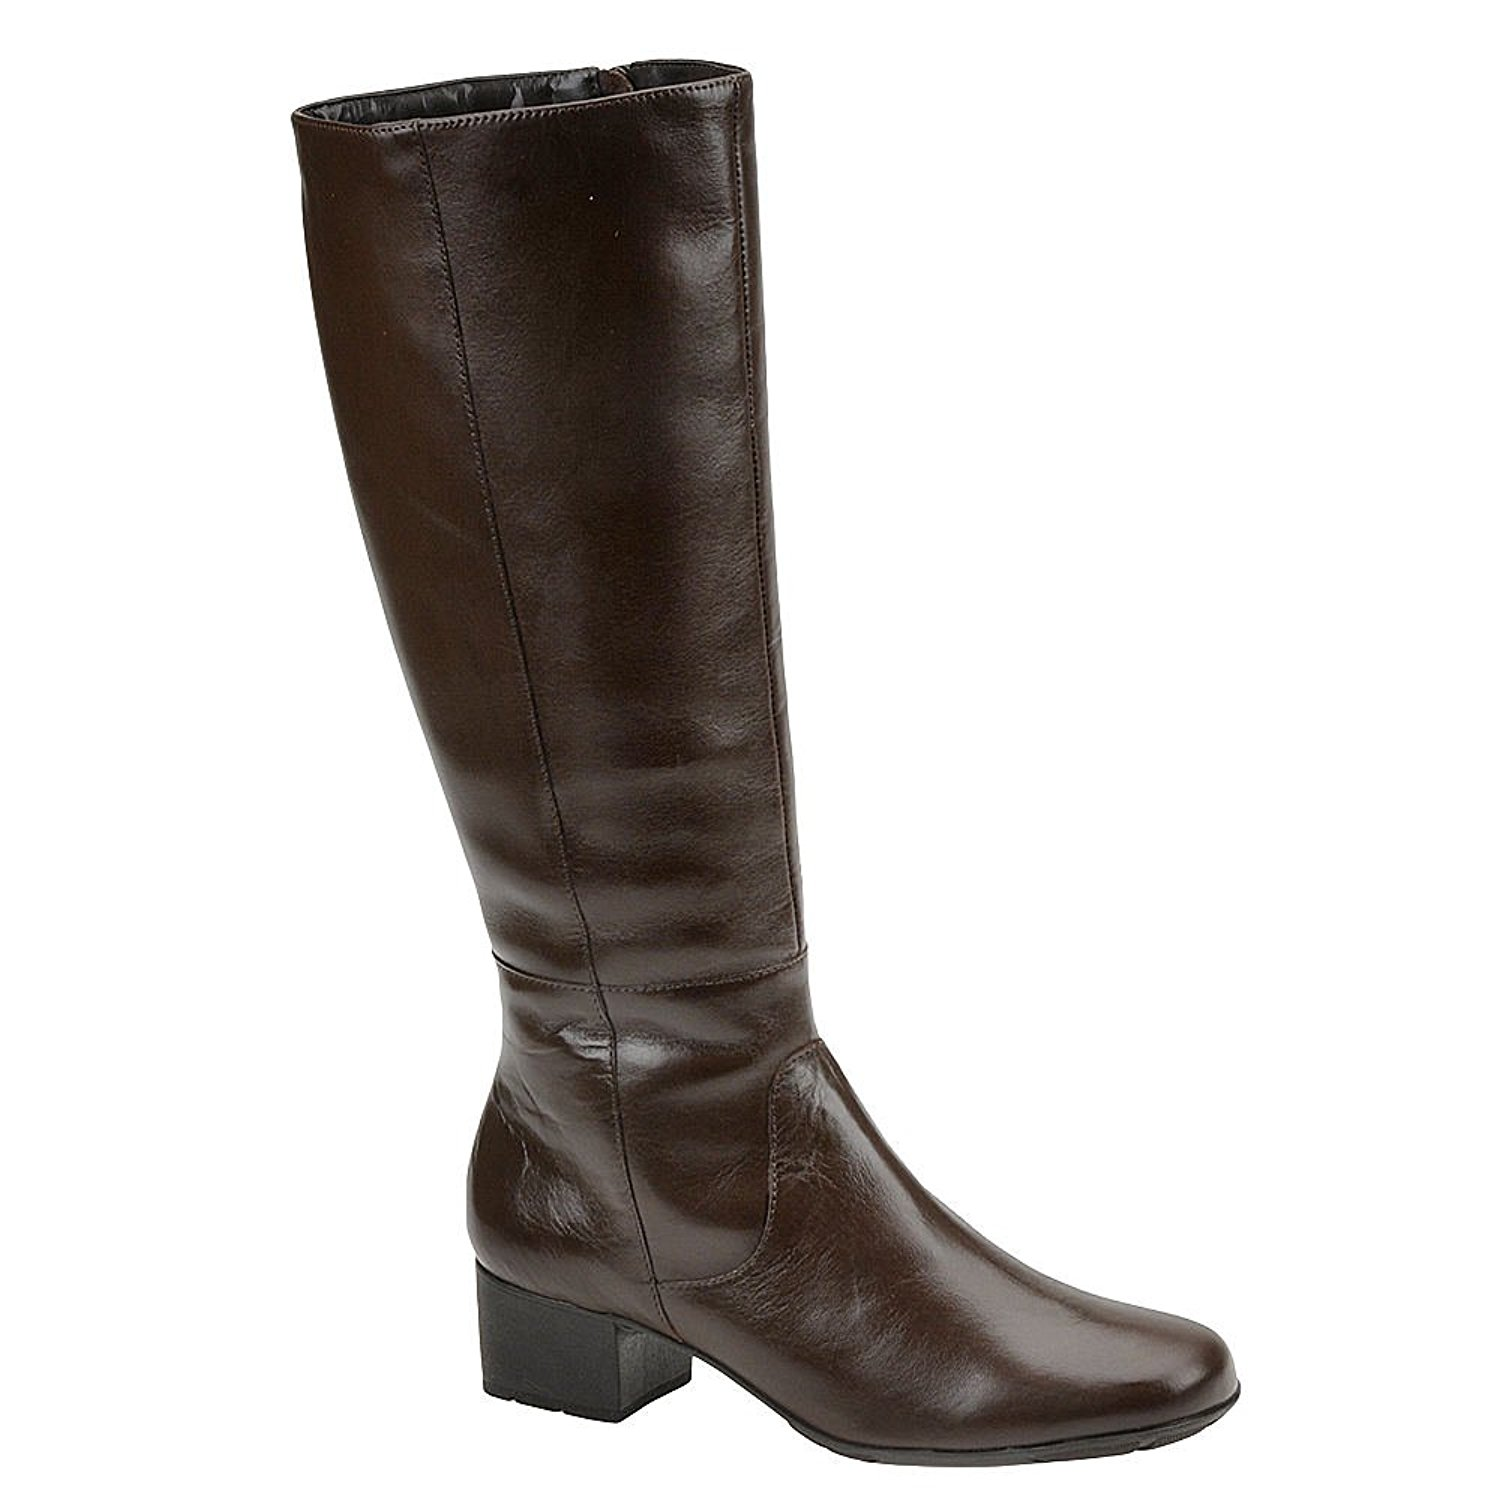 e32649196e4 Details about Walking Cradles Womens Elite Mix Closed Toe Knee High, Brown  Leather, Size 10.0